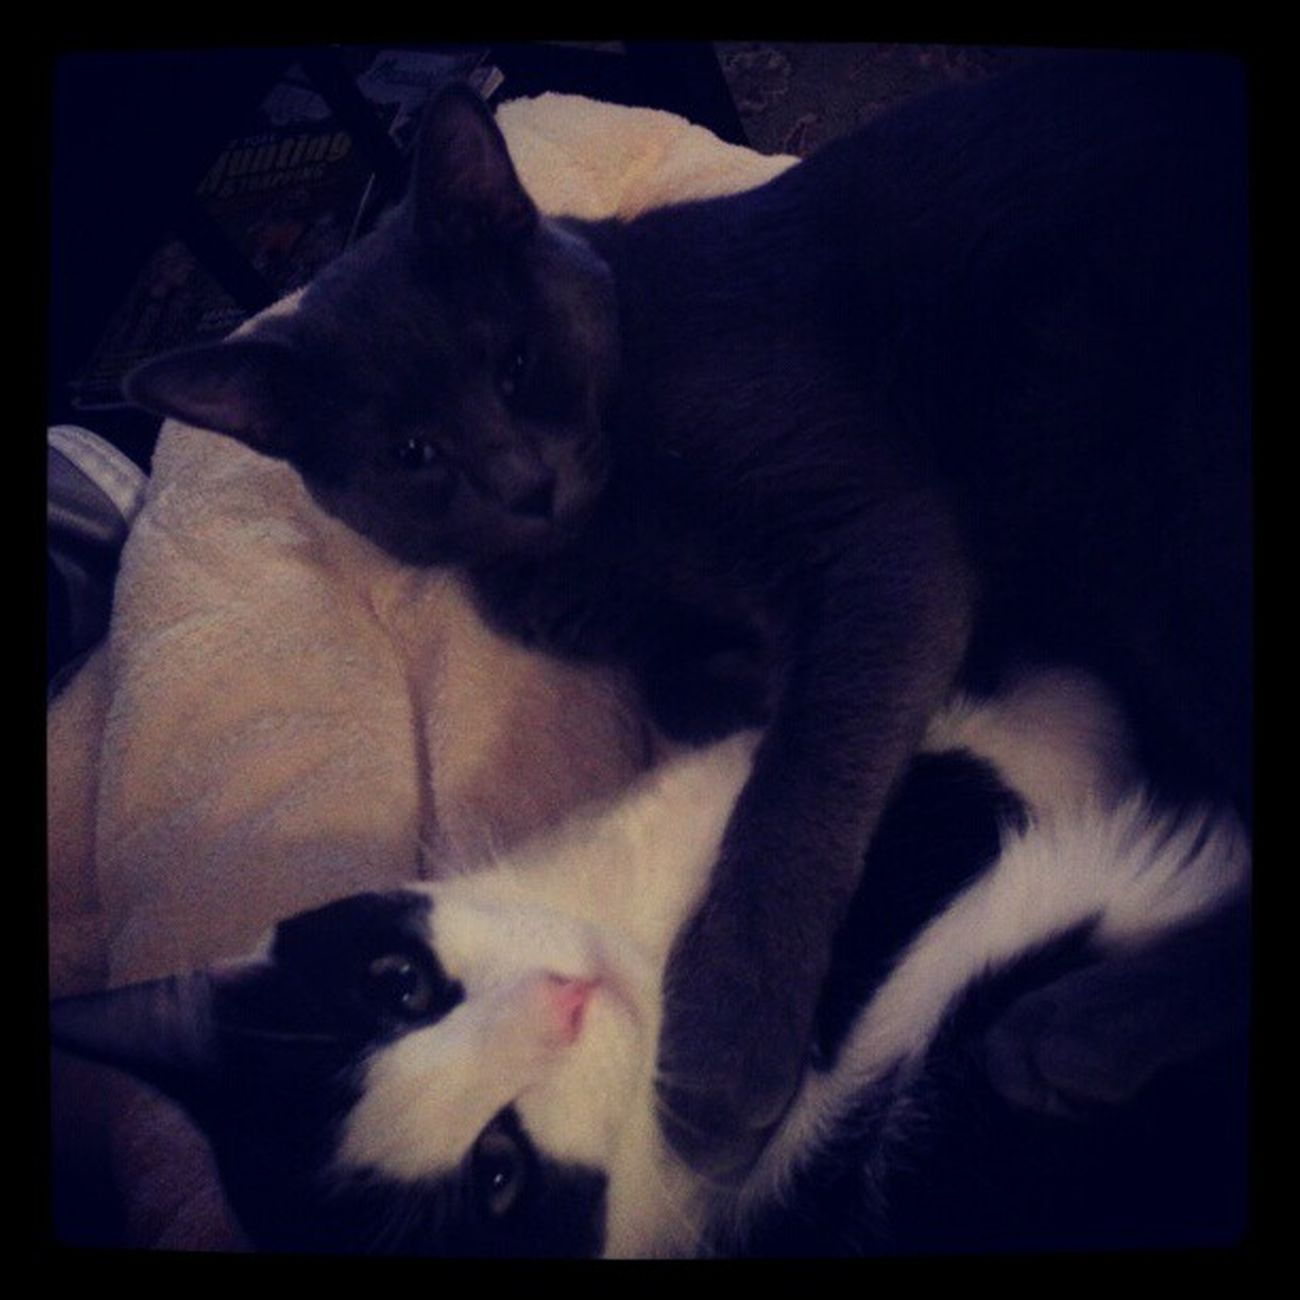 Snuggle time with Littlegriffen and Richardthecat